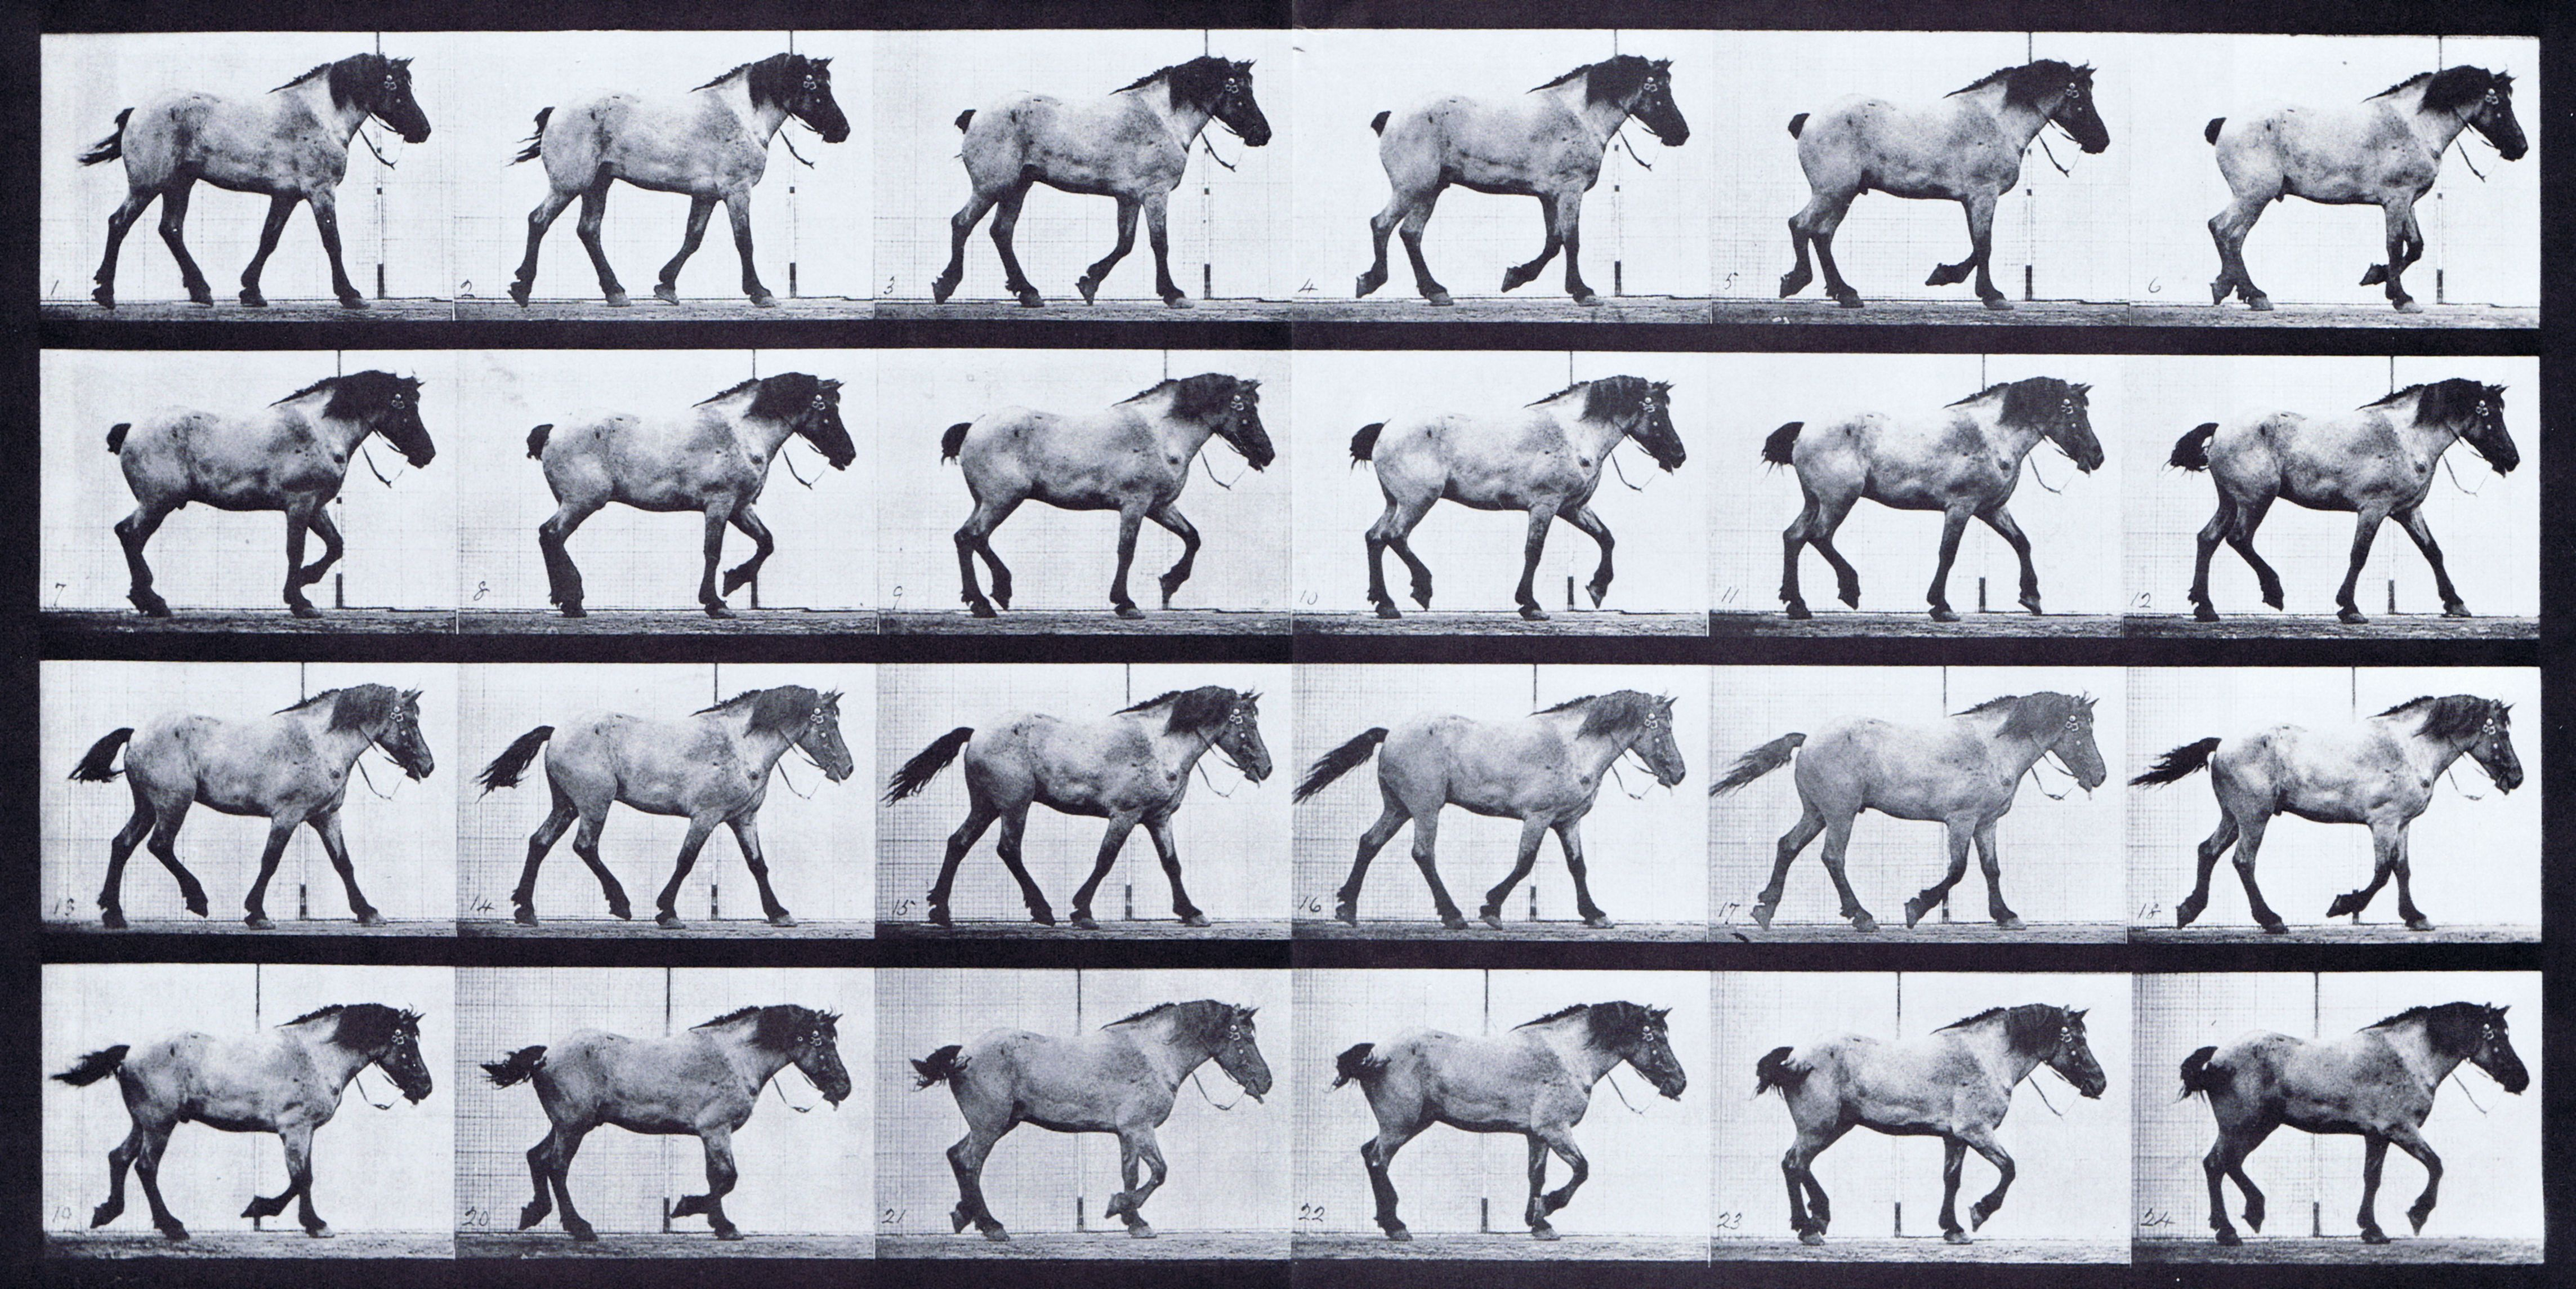 hight resolution of large profile view of horse walking free animation reference using muybridge plate 574 from animal locomotion